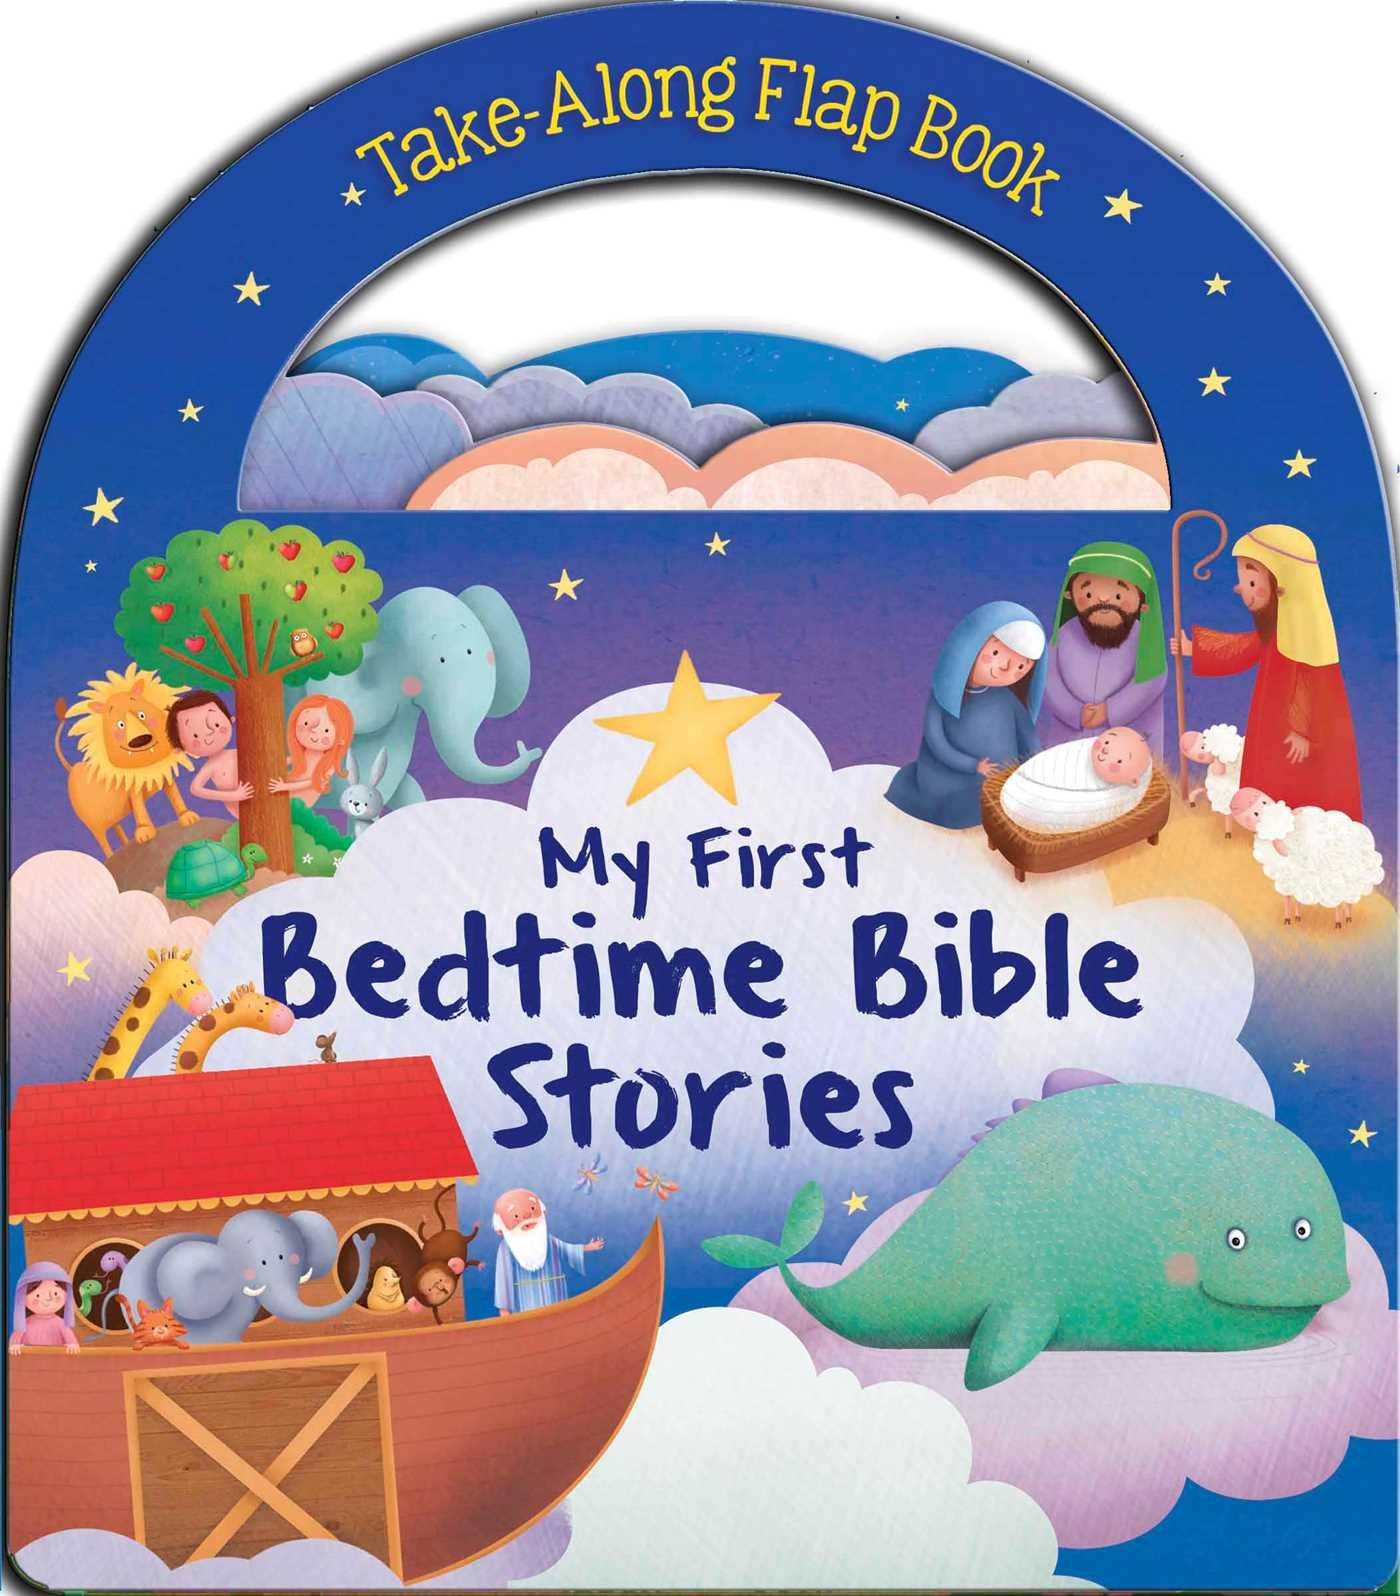 My First Bedtime Bible Stories (Take-along Flap Book) ebook